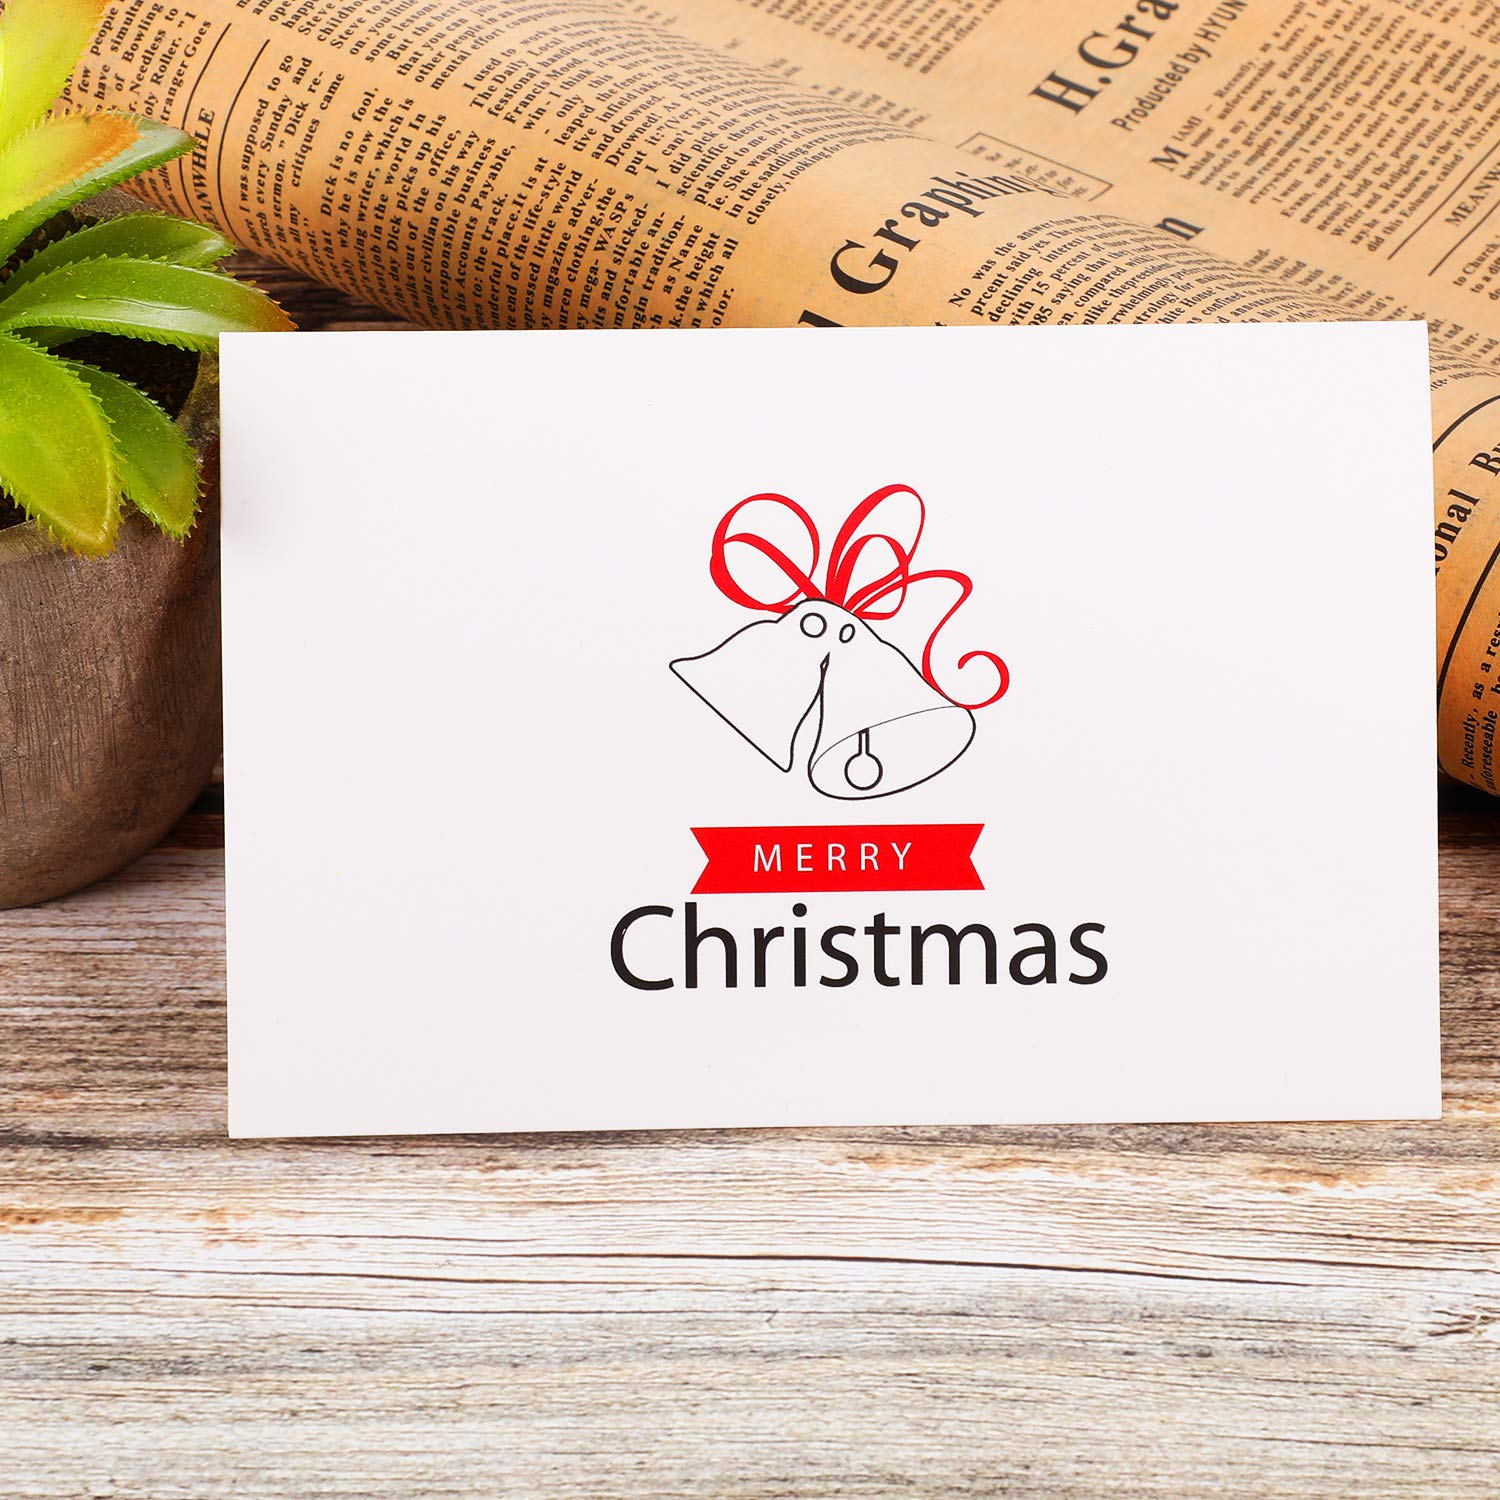 Gejoy 30 Pieces Christmas Place Cards Small Tent Cards Xmas Notecards Foldover Table Placecards Collection for Holiday Dinner Parties